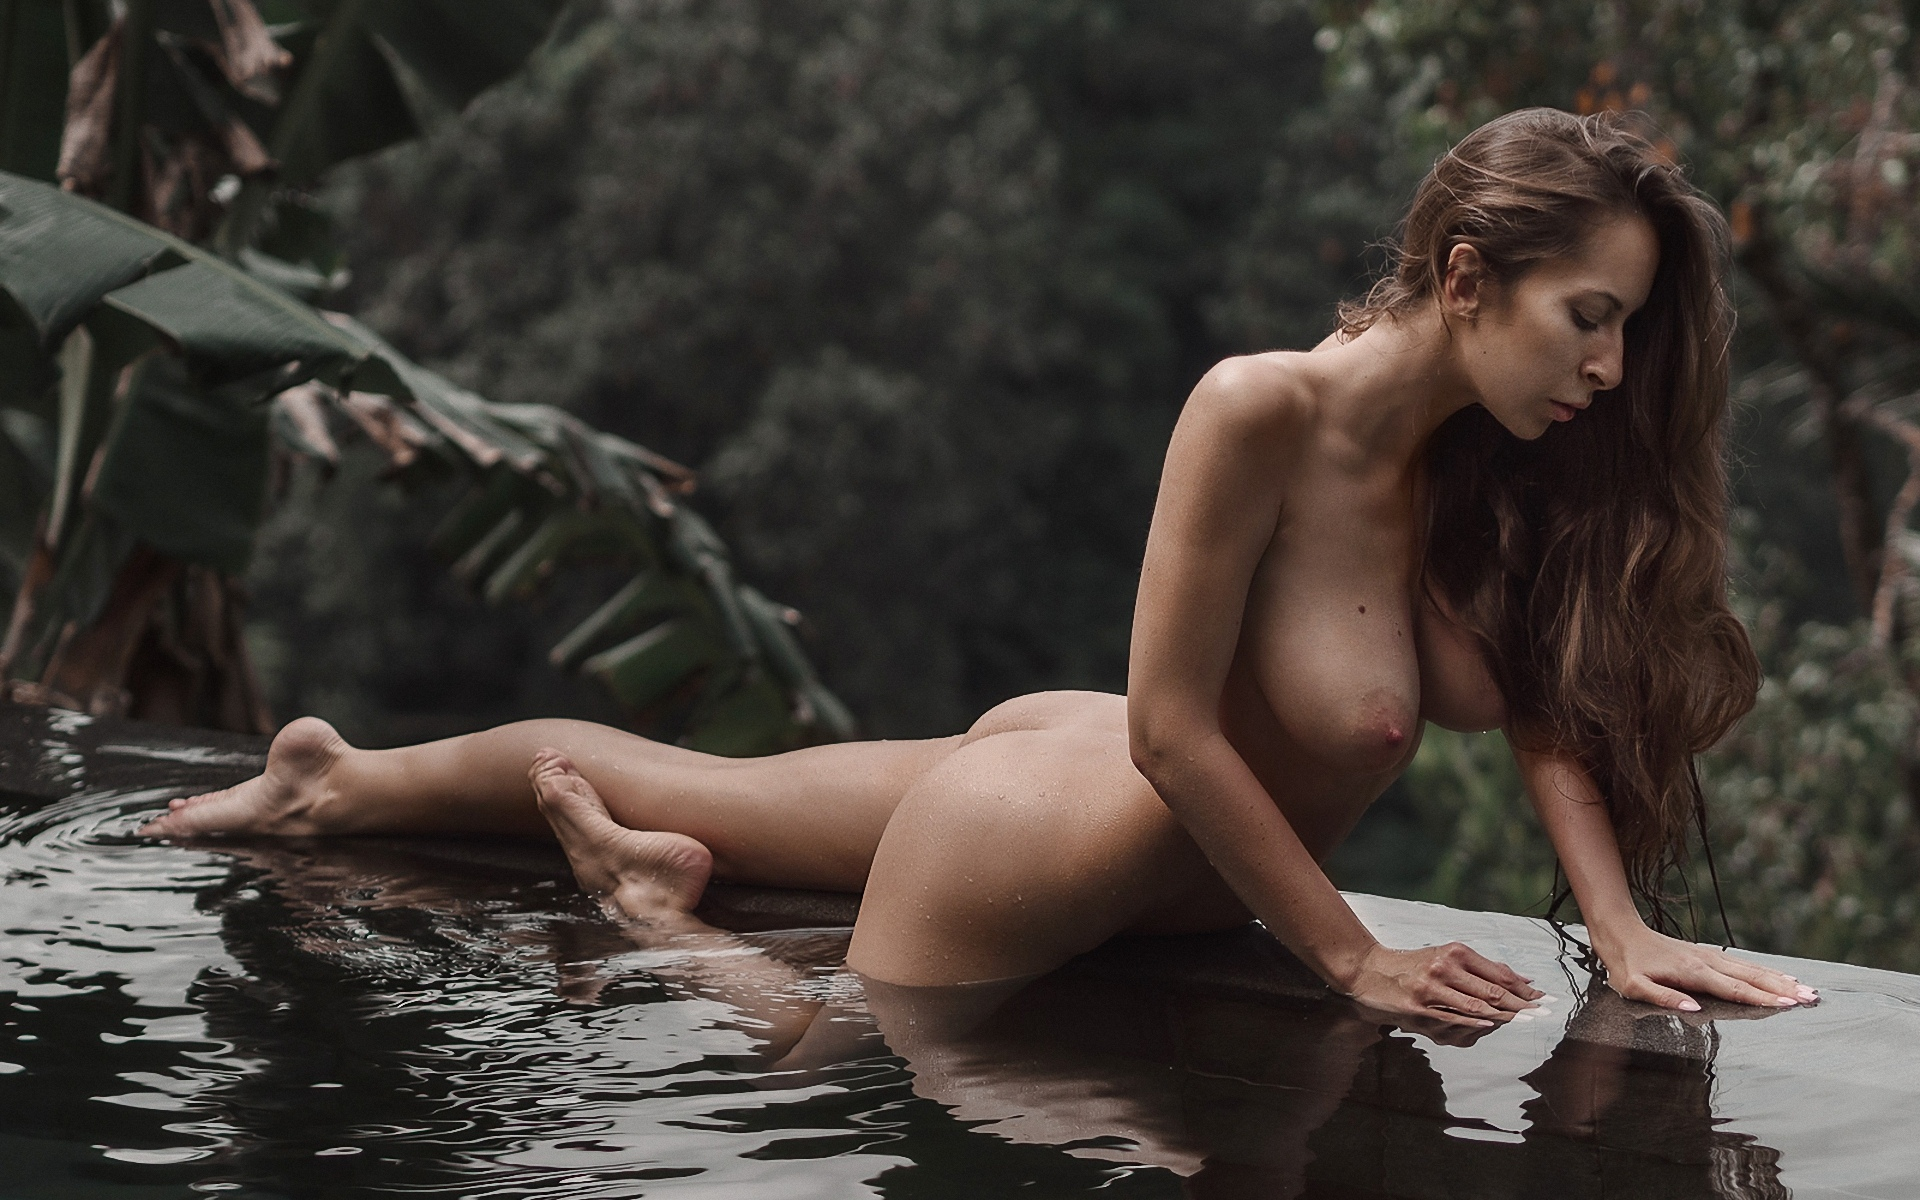 Naked female tourist spotted in bali